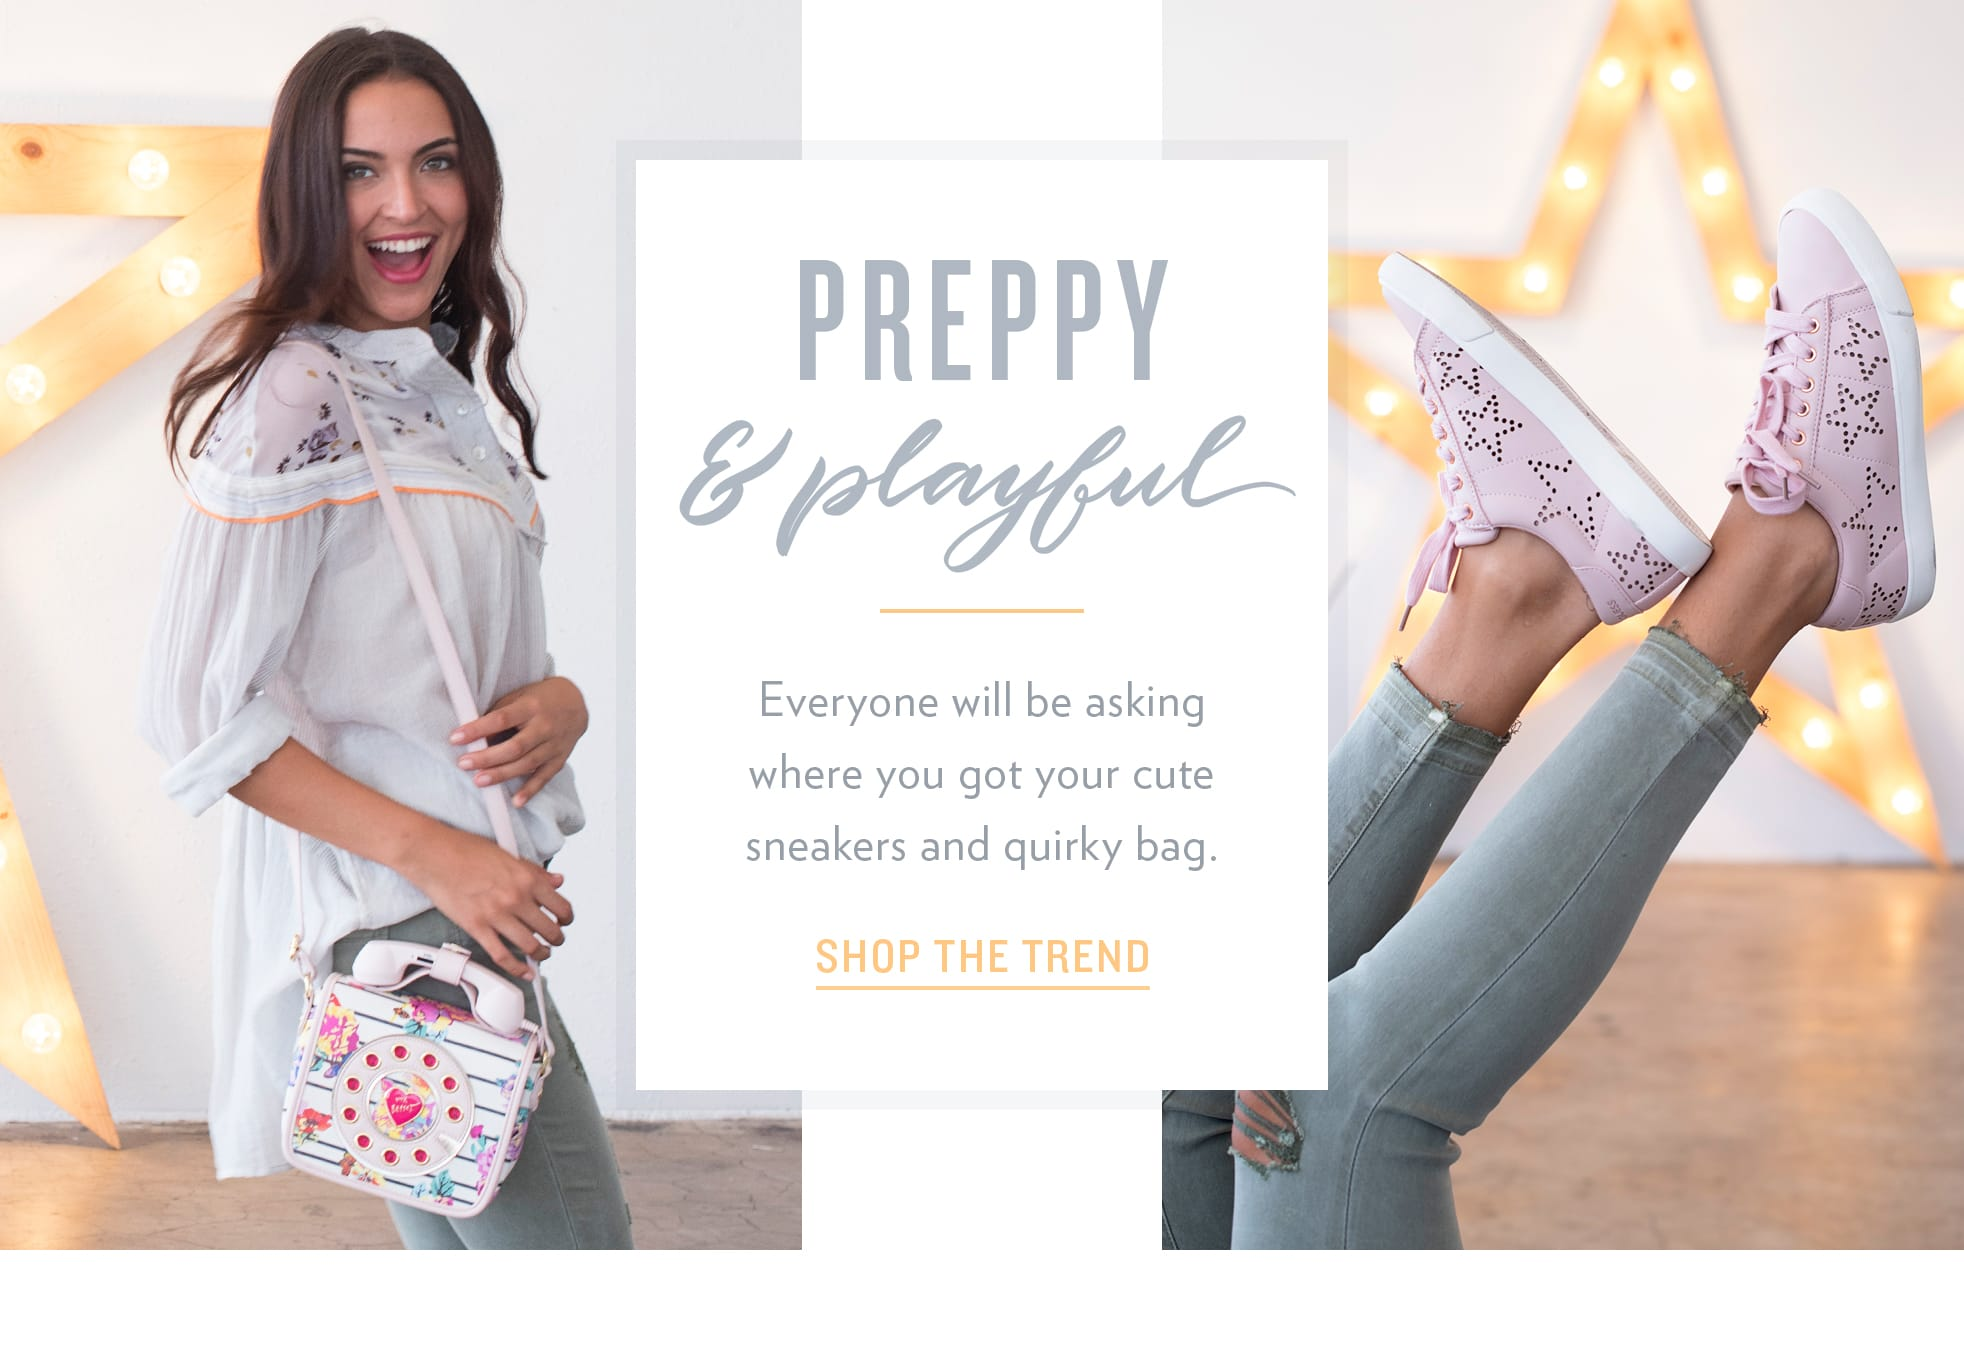 Fashion Trend: Preppy & Playful